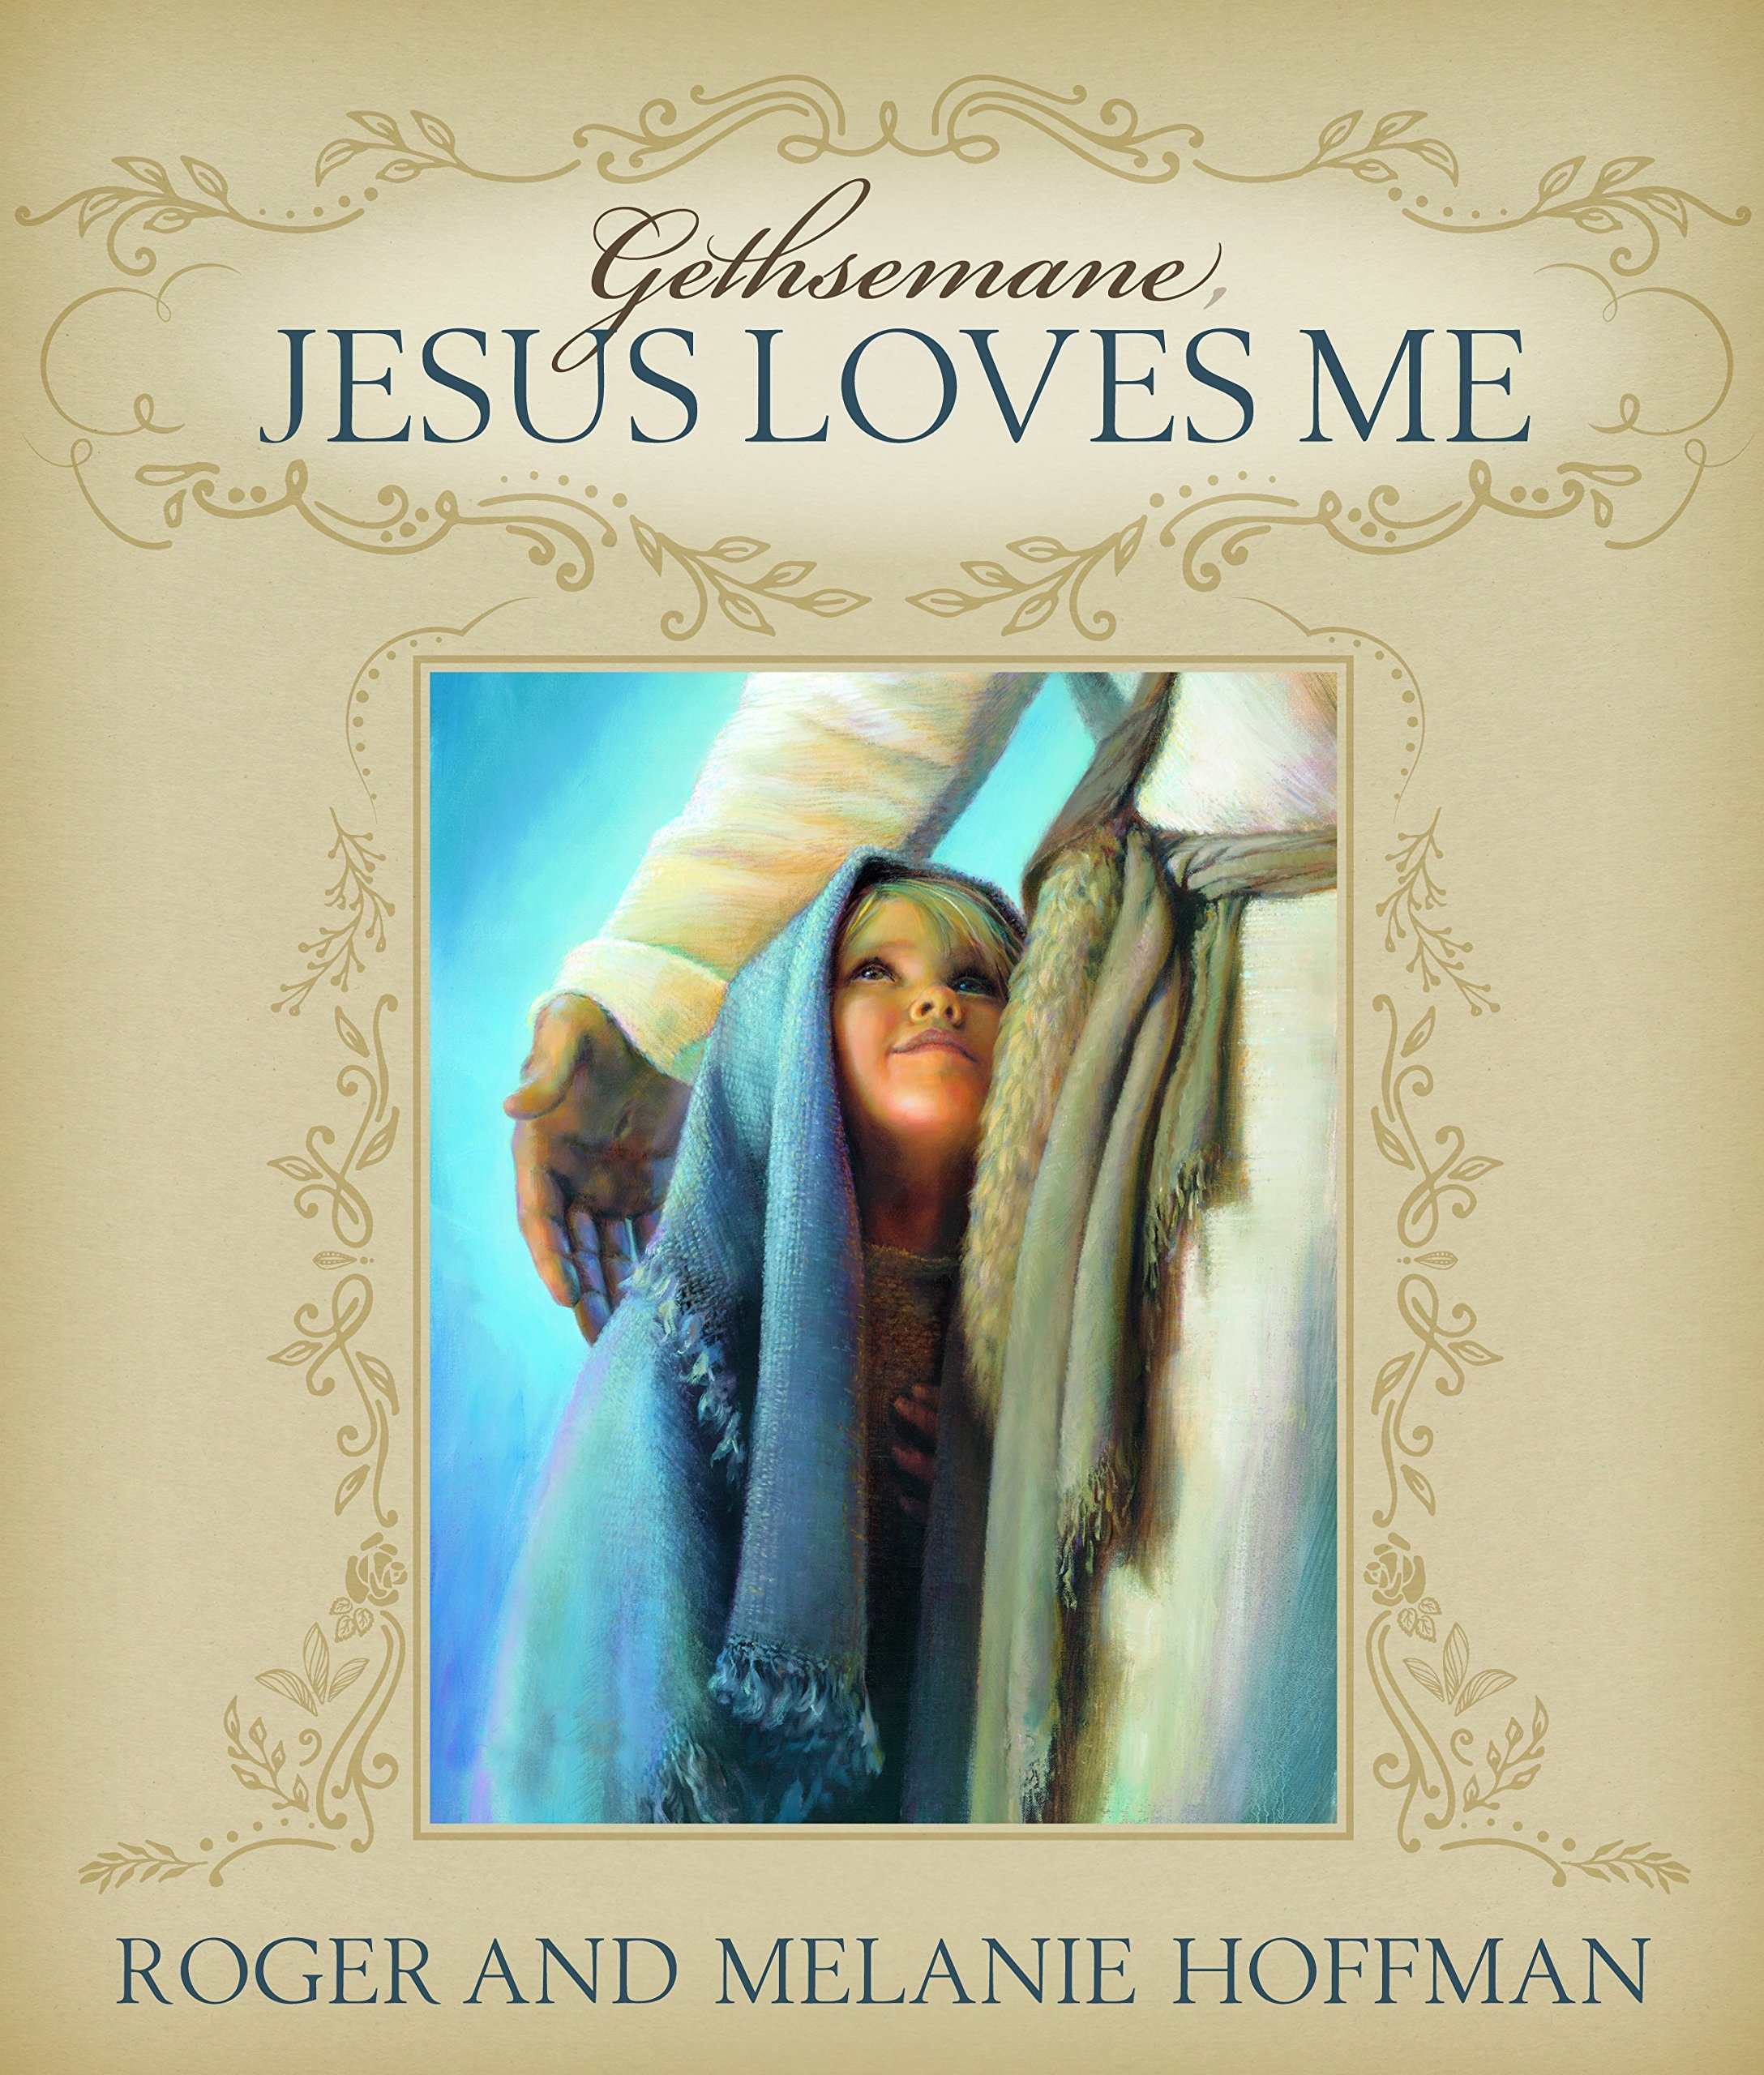 Gethsemane, Jesus Loves Me, Roger and Melanie Hoffman